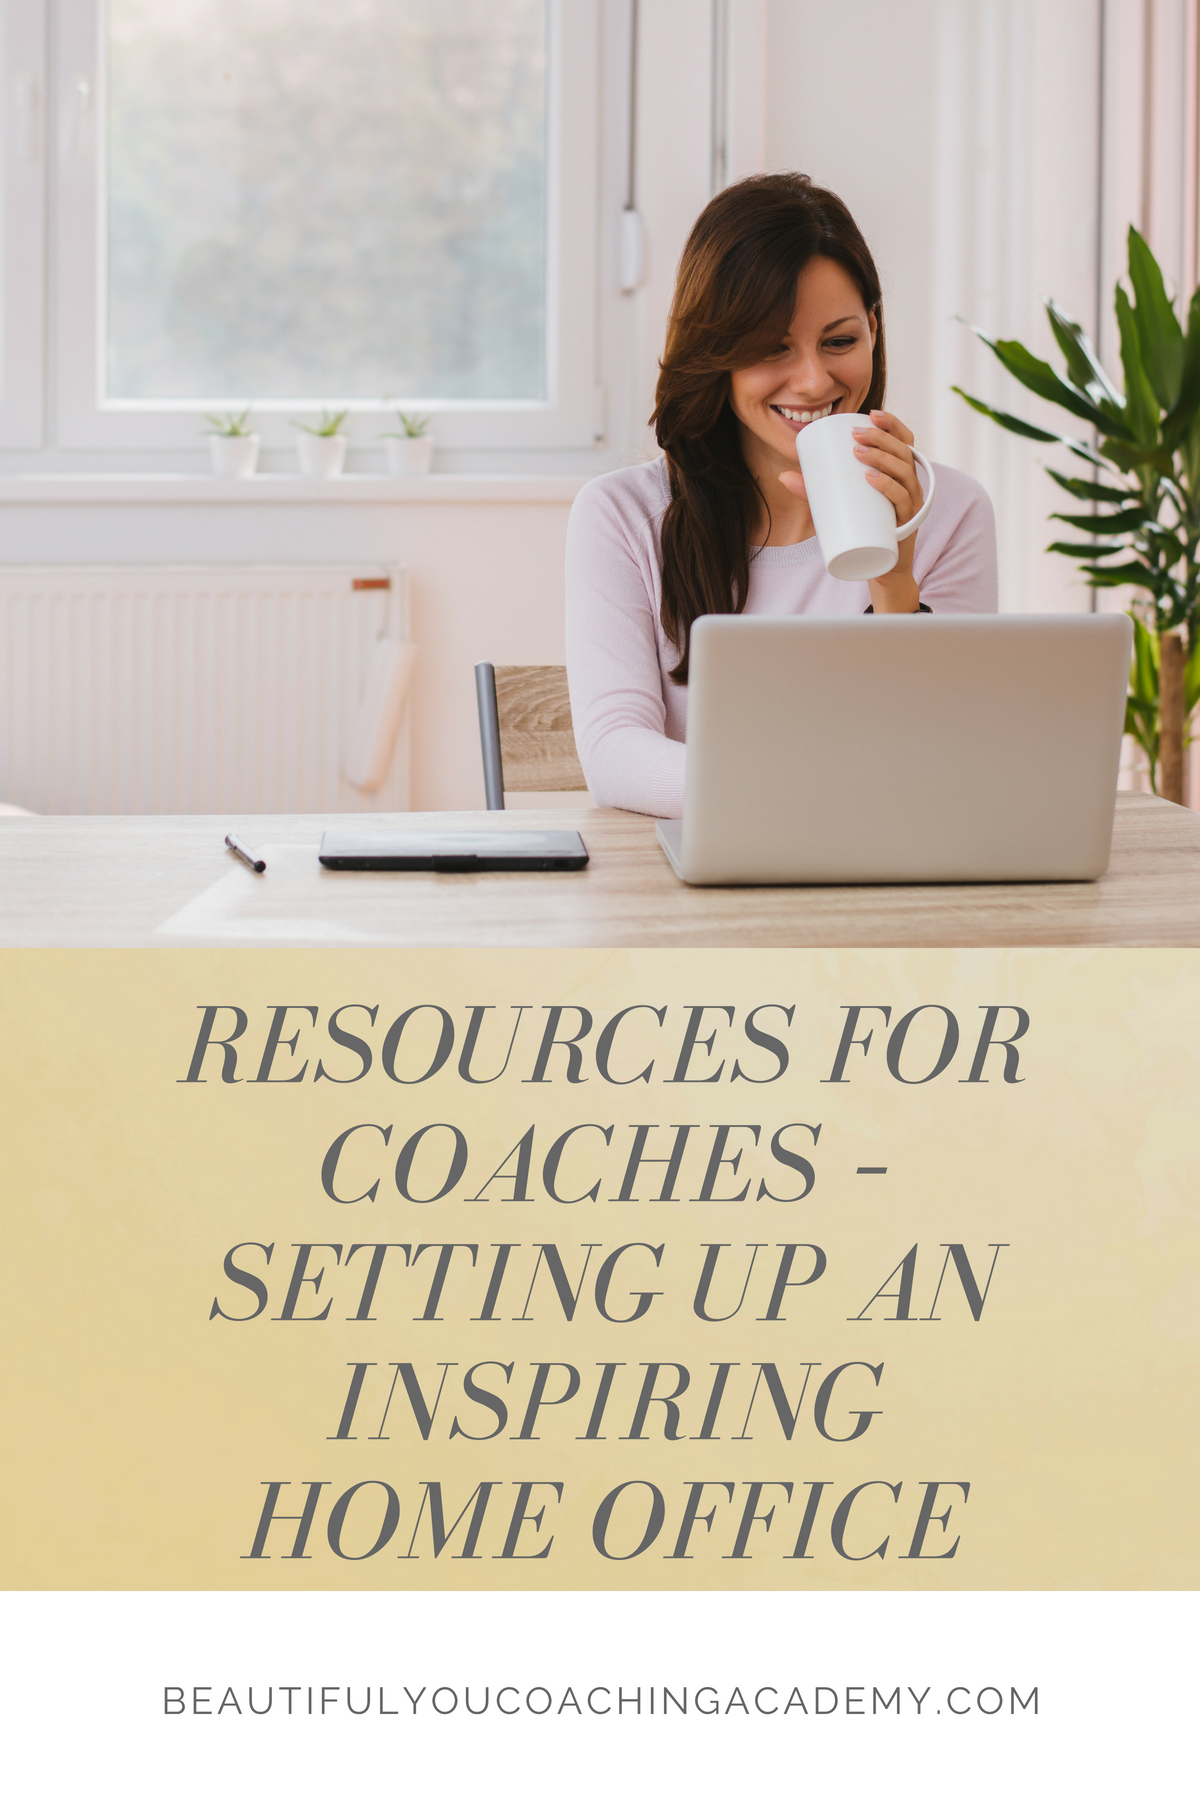 Resources for Coaches – Setting Up an Inspiring Home Office